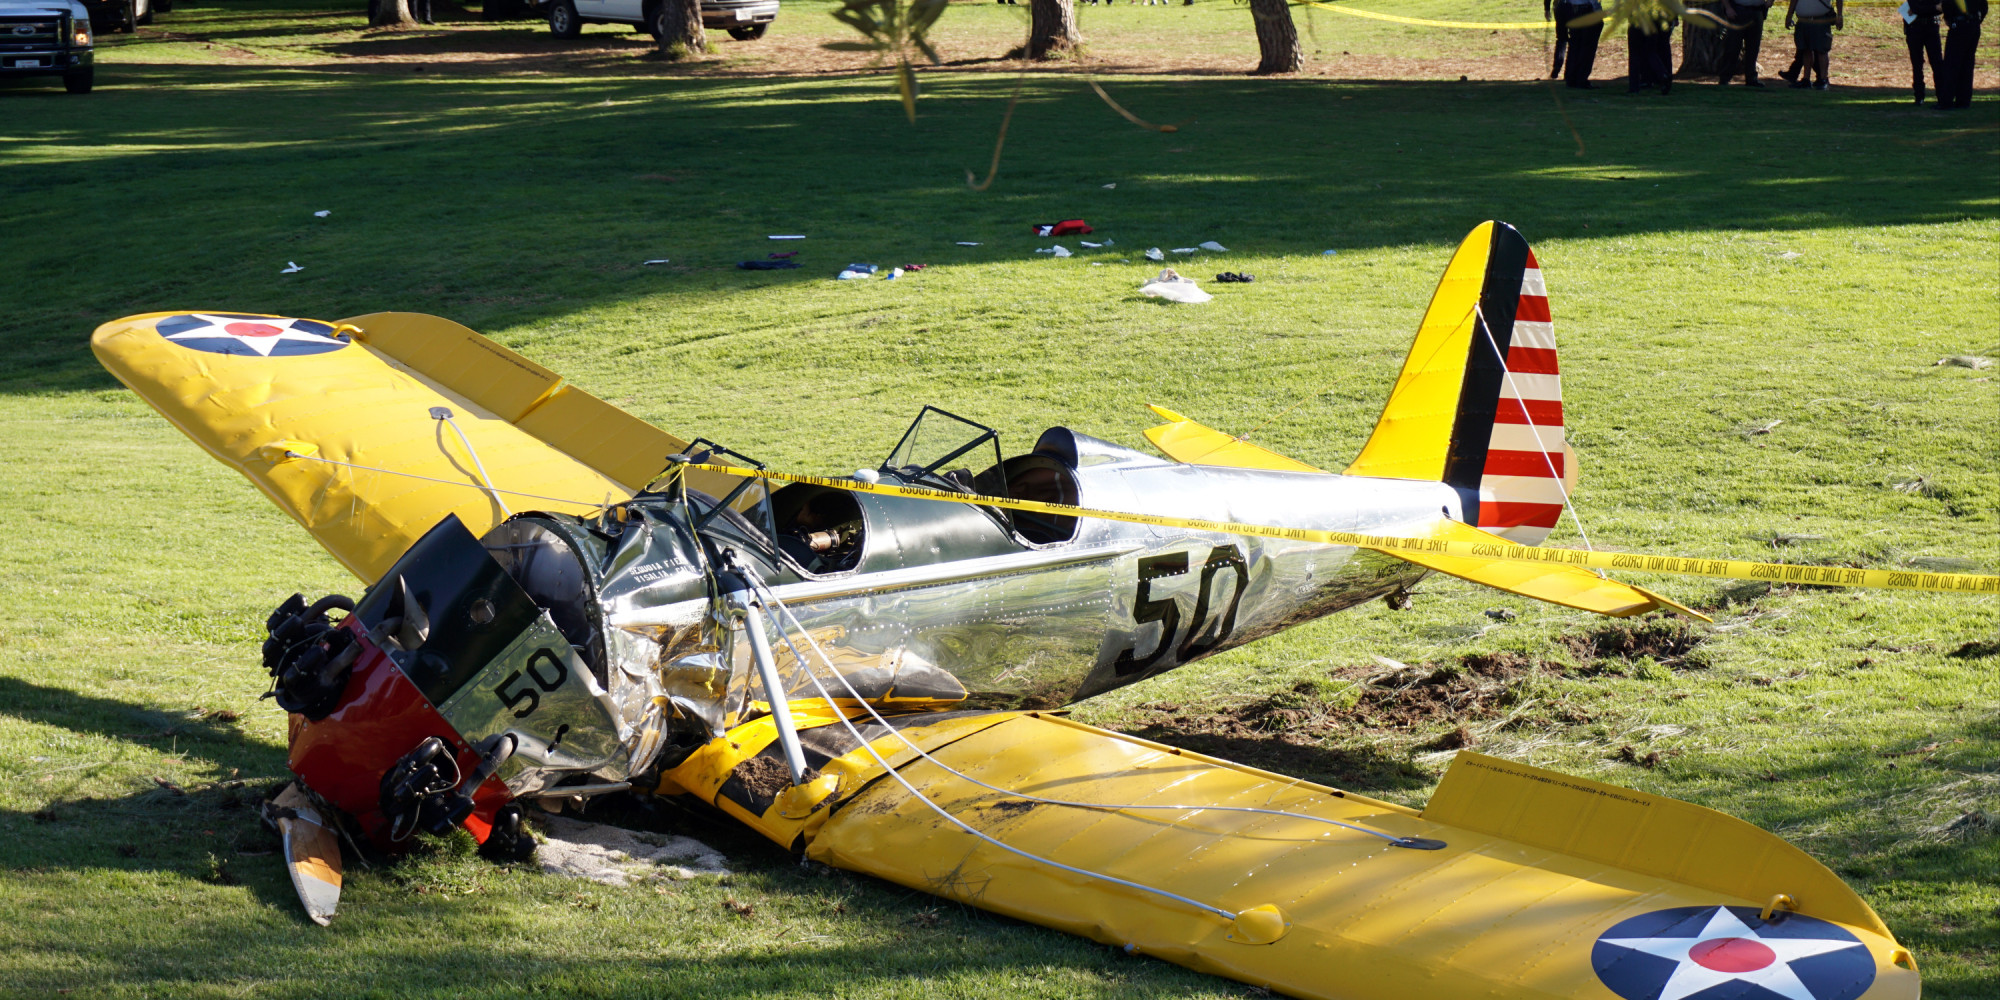 Harrison Ford Wedding of Harrison Ford's Plane